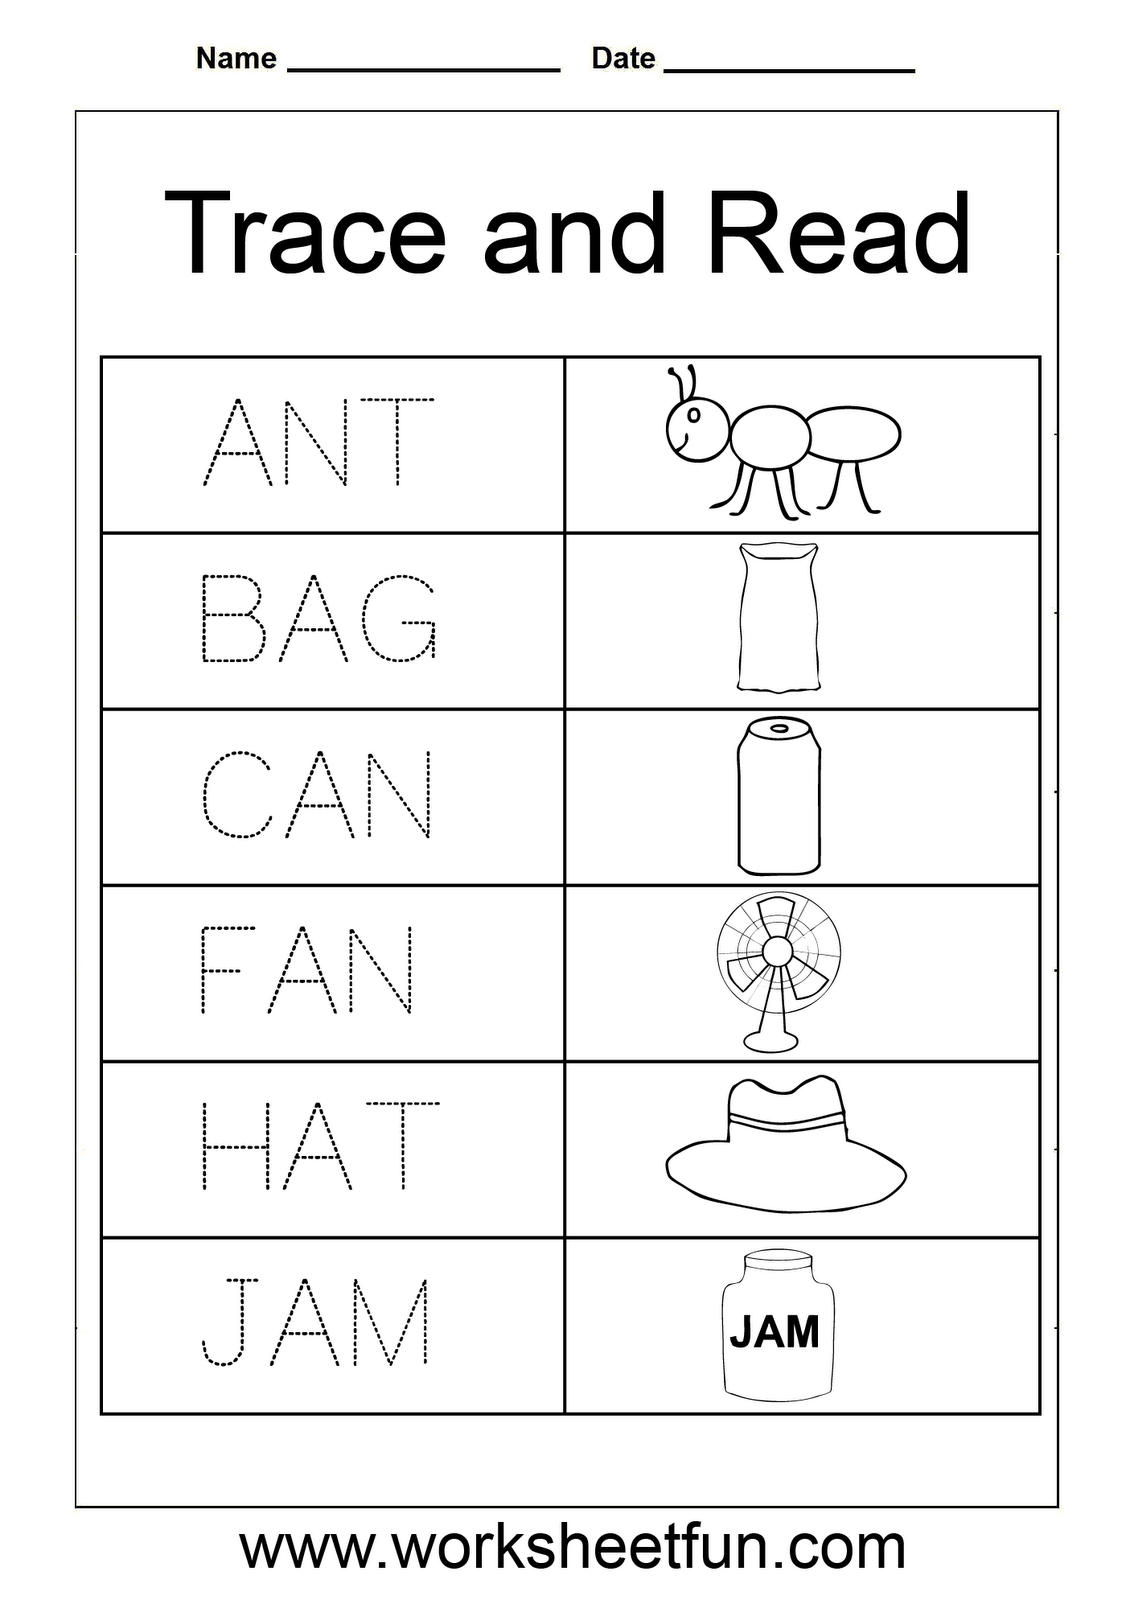 3 Letter Words | Spelling Worksheets, Kindergarten regarding Tracing Three Letter Words Worksheets